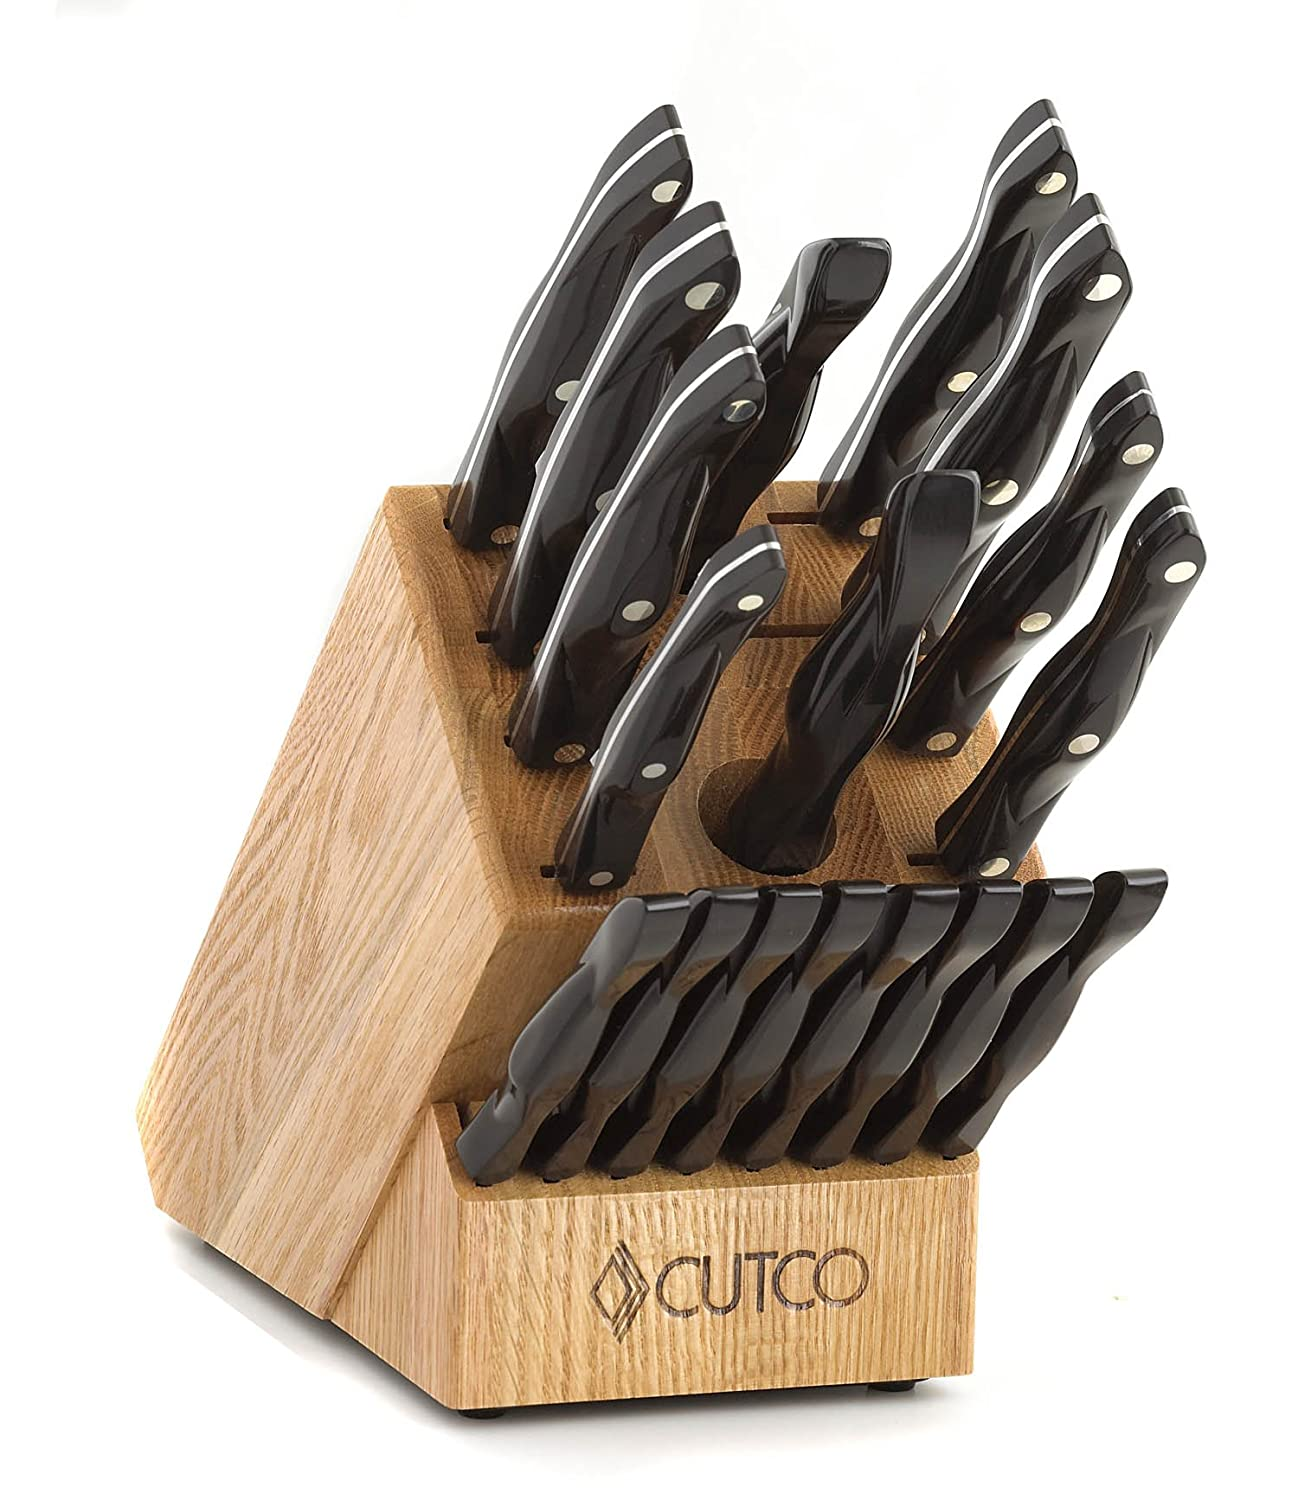 Cutco Kitchen Knife Set